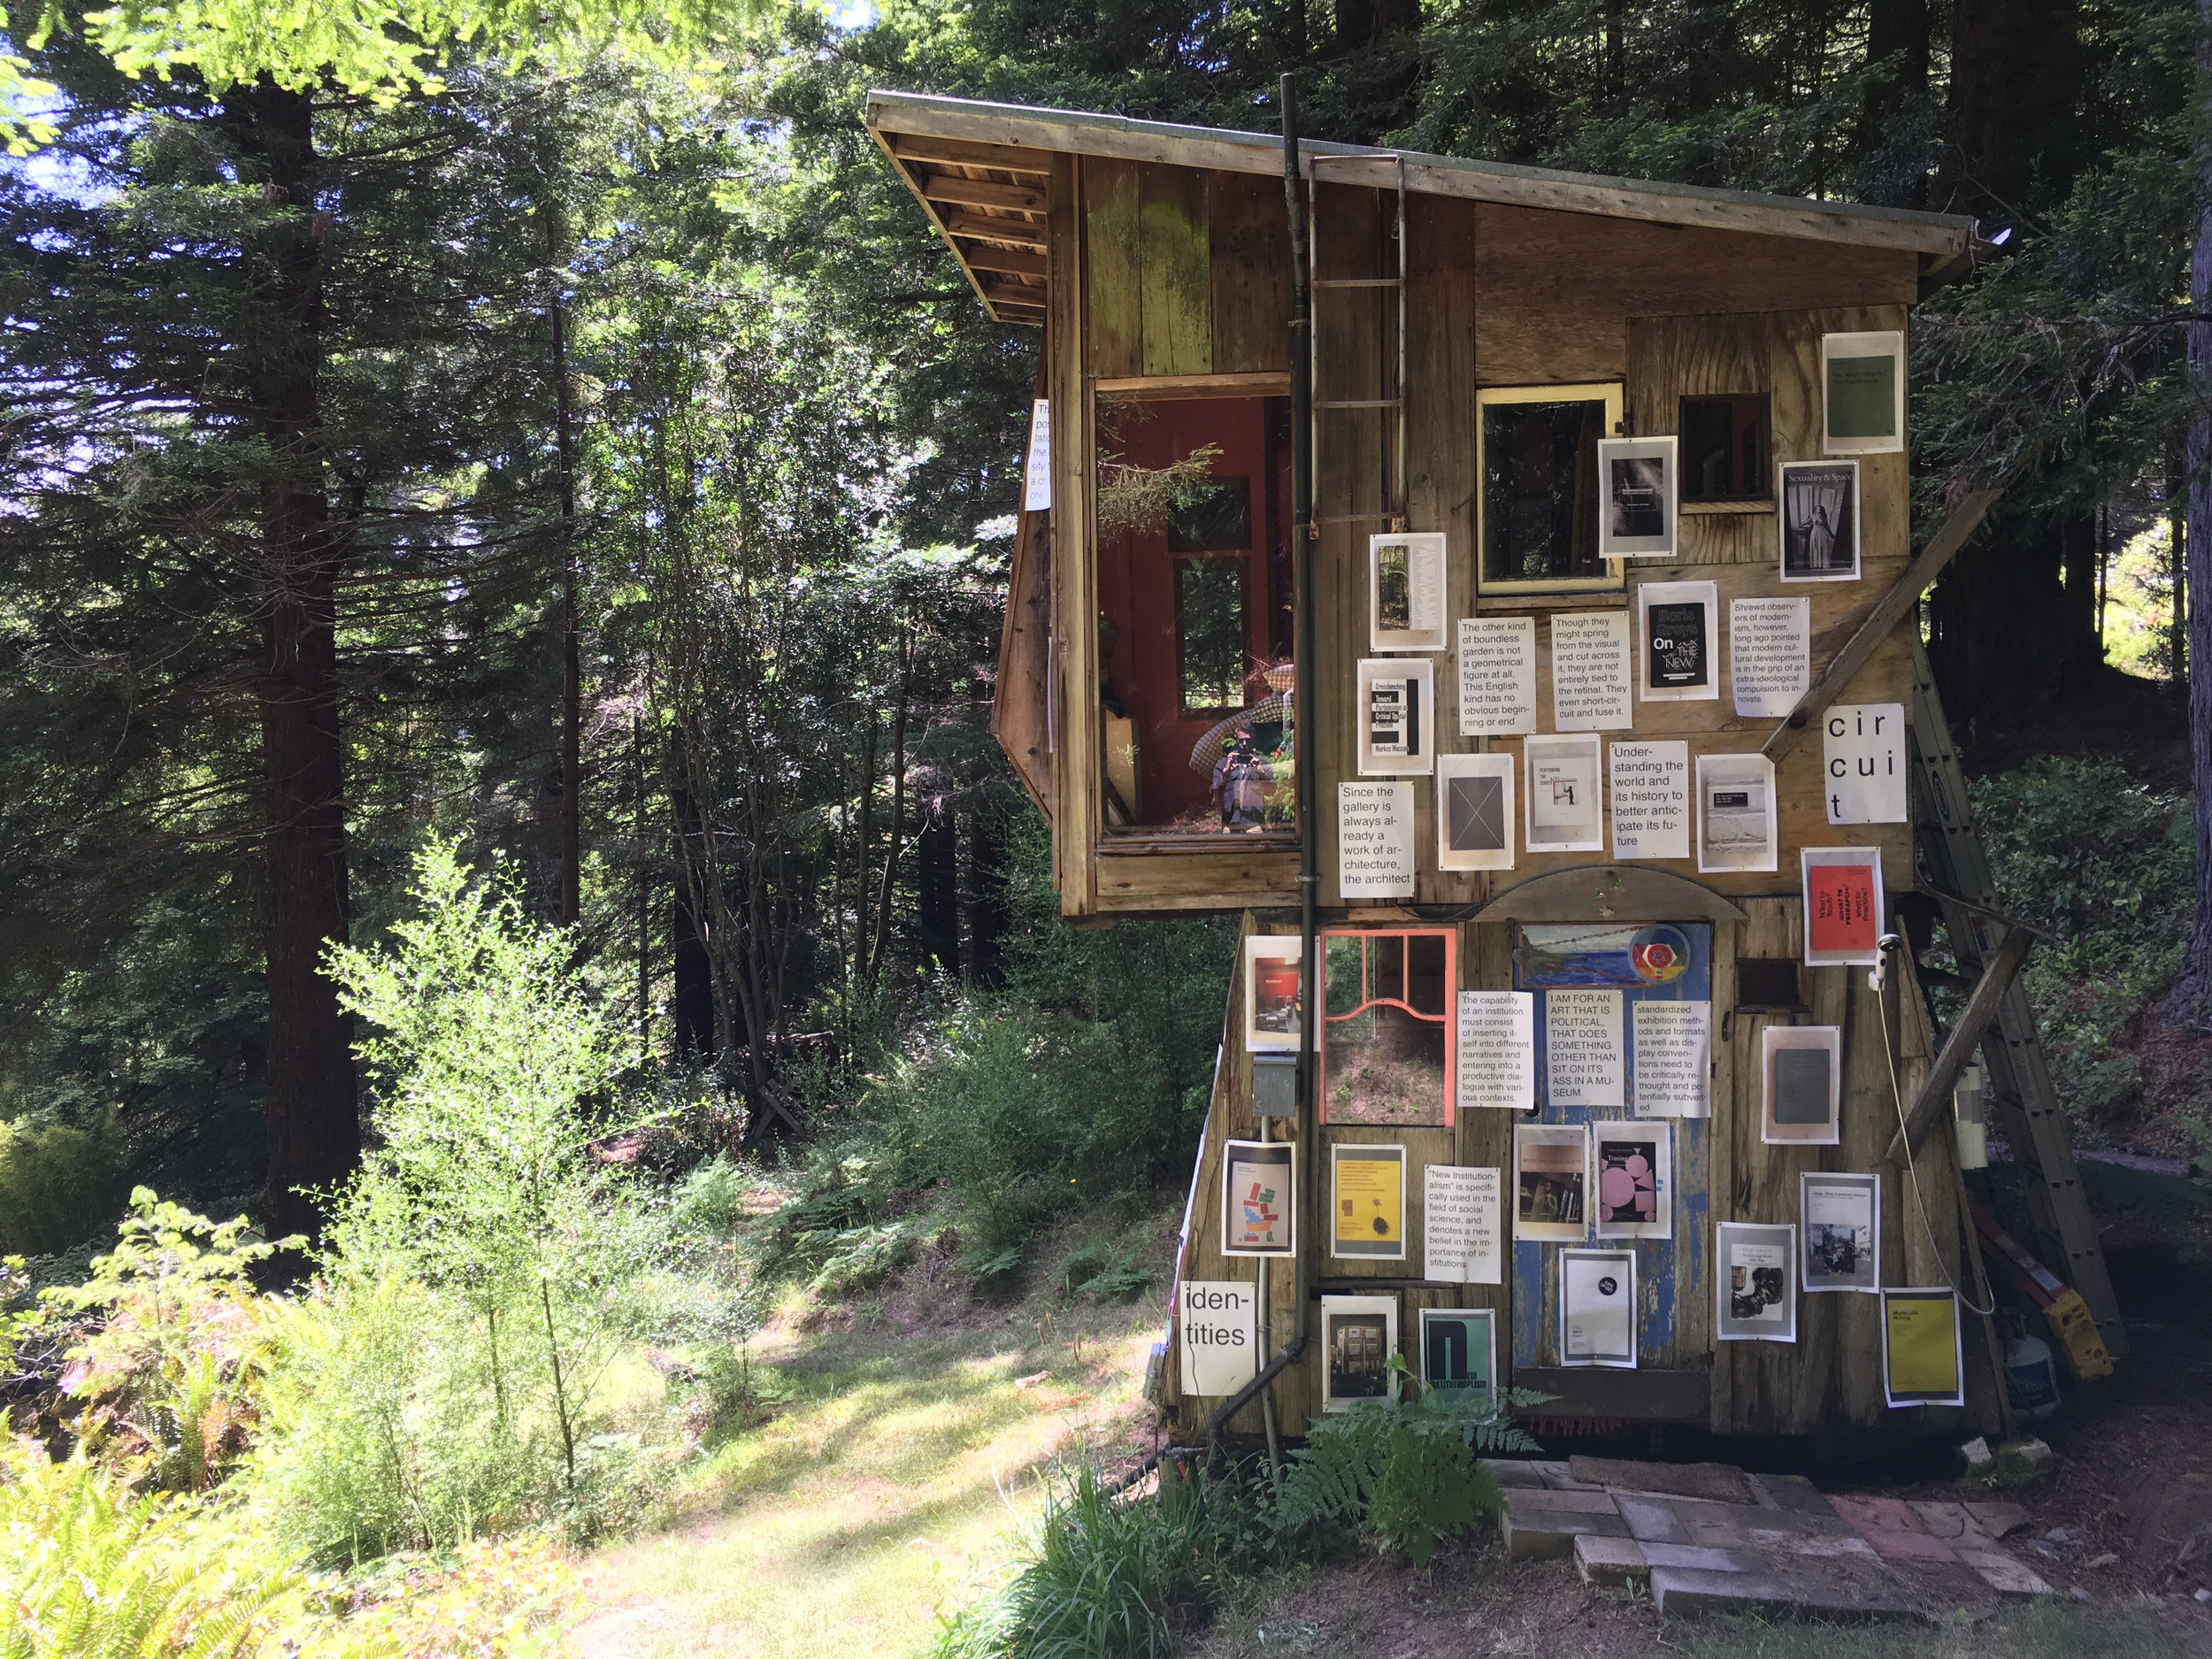 Companion Planting . Module: Institutions, led by Nate Padavick, Calvin, Rocchio, and James Voorhies. Posters of photographs of books and related quotes reflecting modes of visionary challenges to institution practice. River Cabin, Salmon Creek Farm, June 9, 2018.